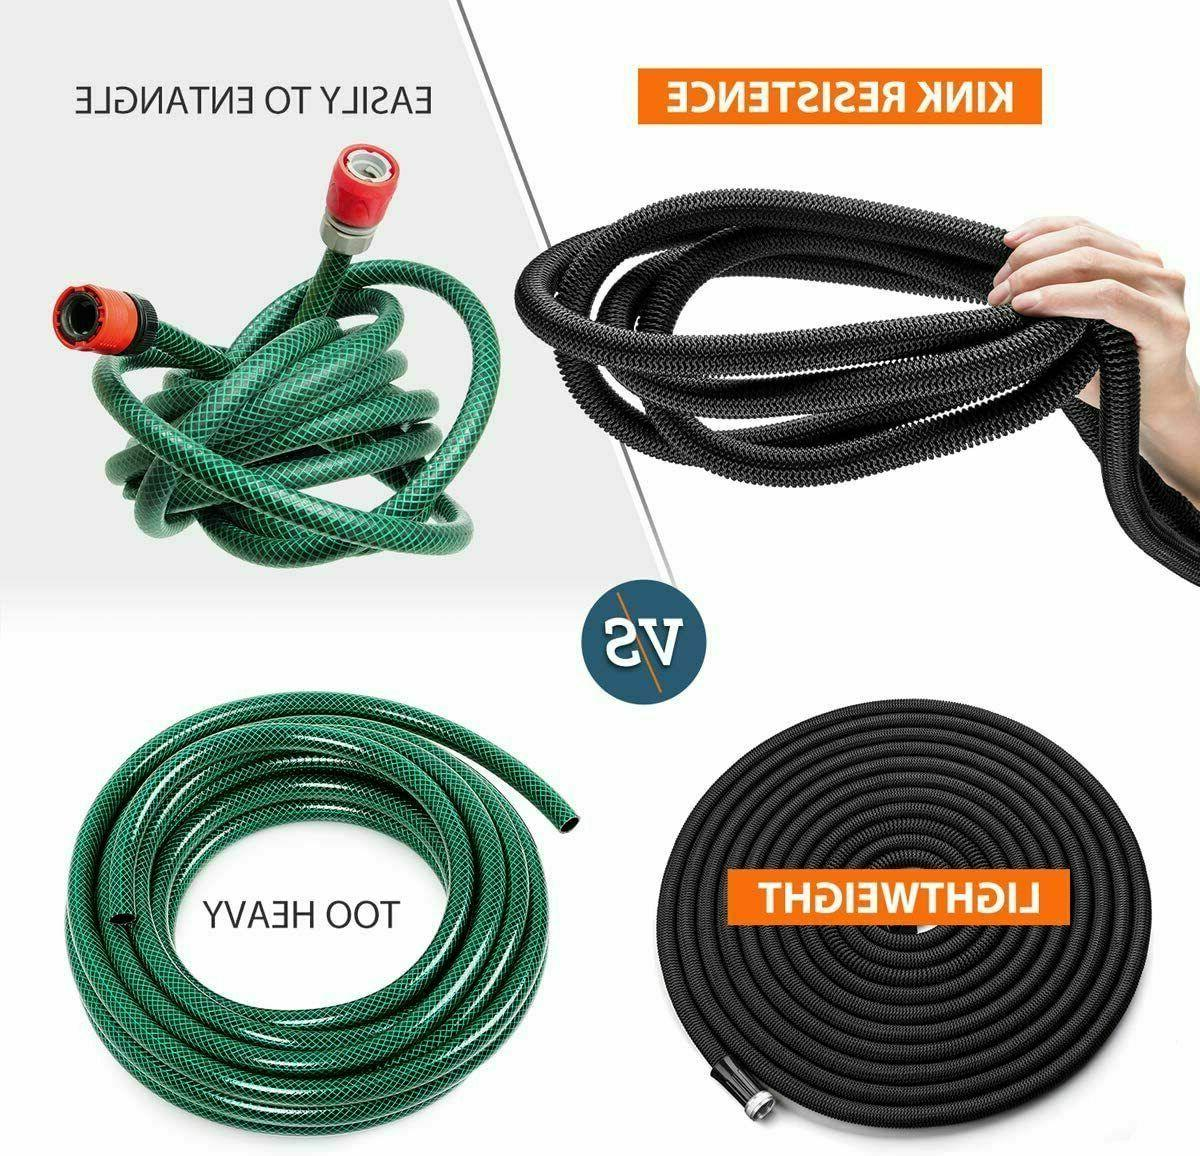 HooSeen Expandable 50ft Flexible Kink-Free Water Hose with Double L